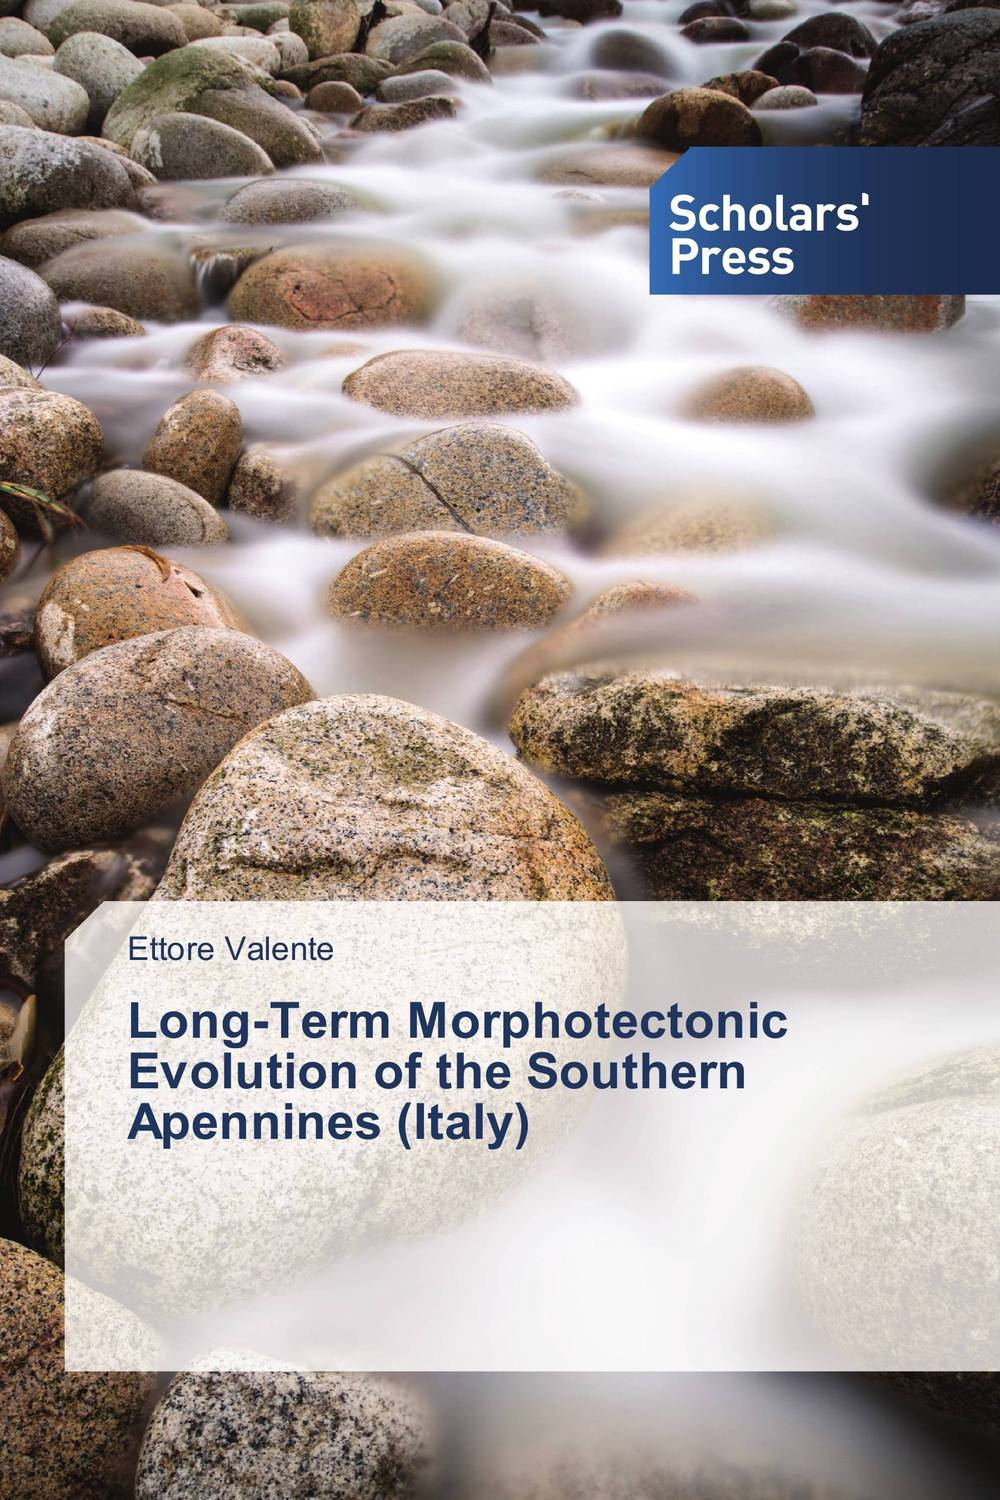 Long-Term Morphotectonic Evolution of the Southern Apennines (Italy) evolution of crude oil price term structure